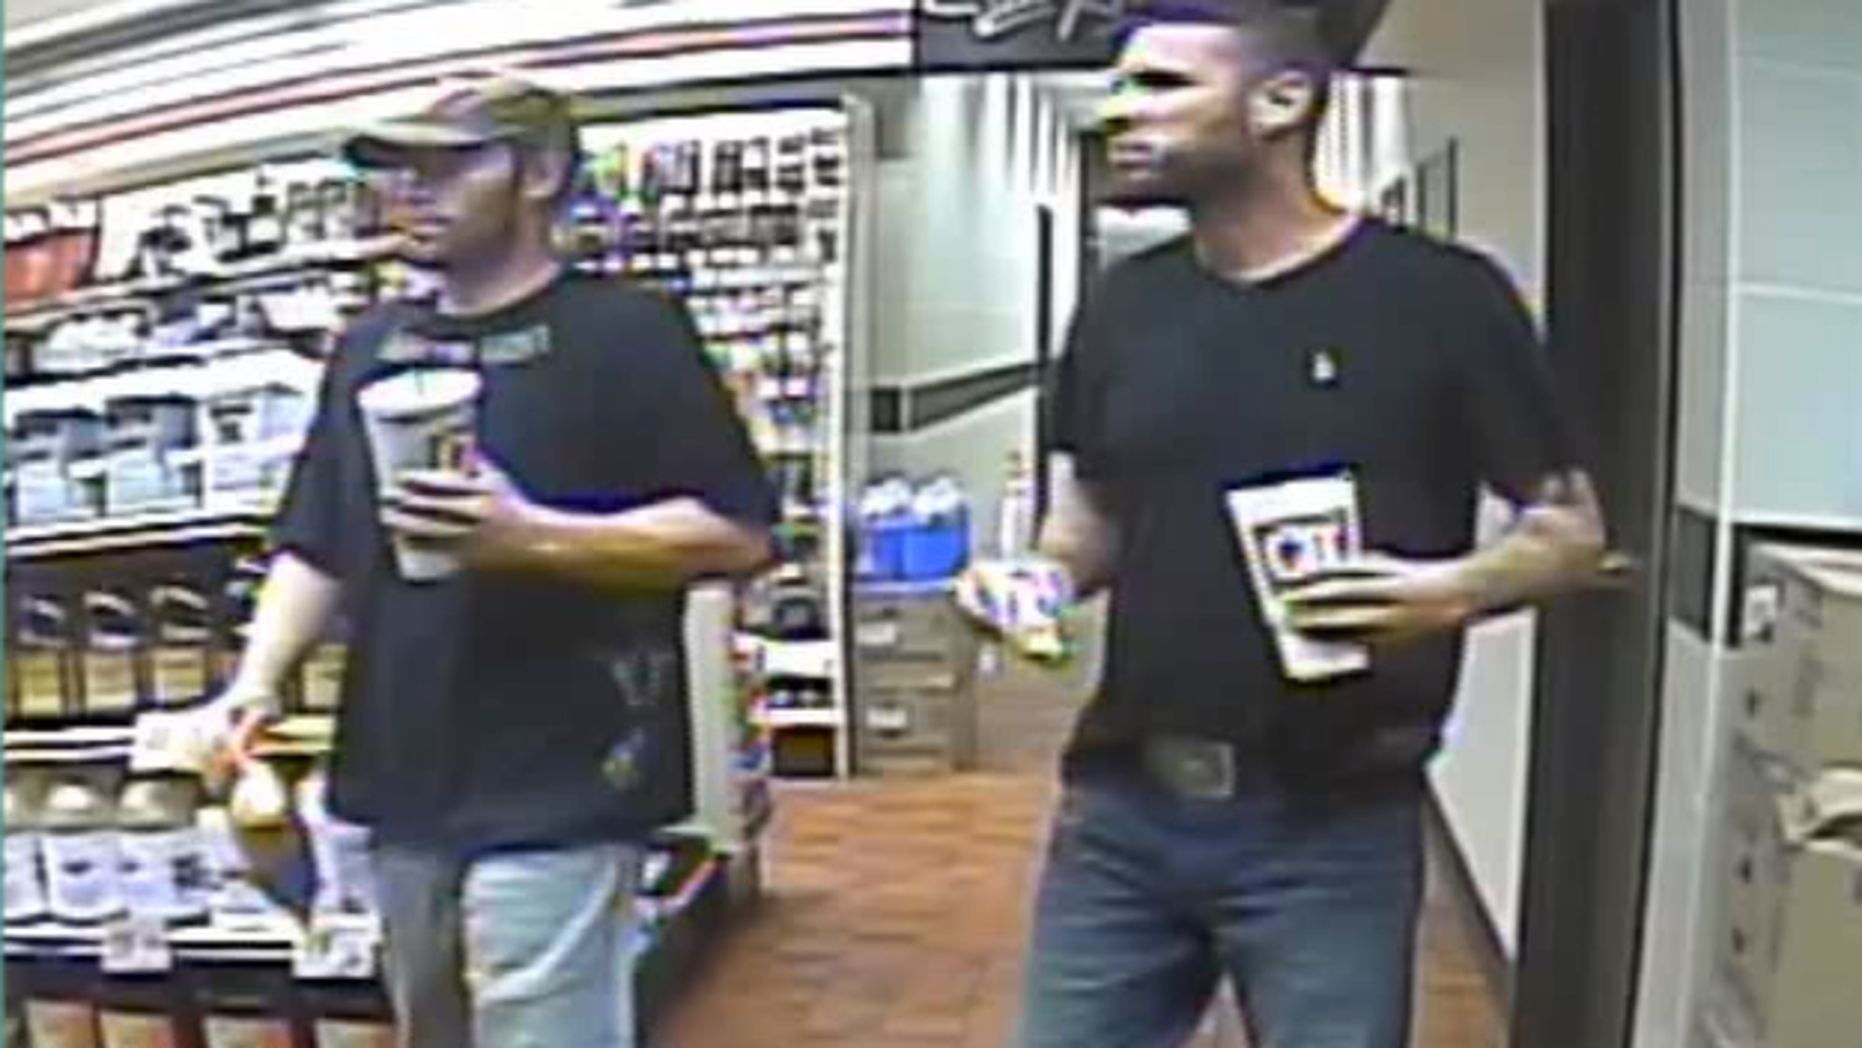 Two escaped inmates were caught on camera buying drinks and snacks in a QuikTrip in Oklahoma. They are believed to be driving east in a stolen 2007 black Peterbilt semi-truck trailer.